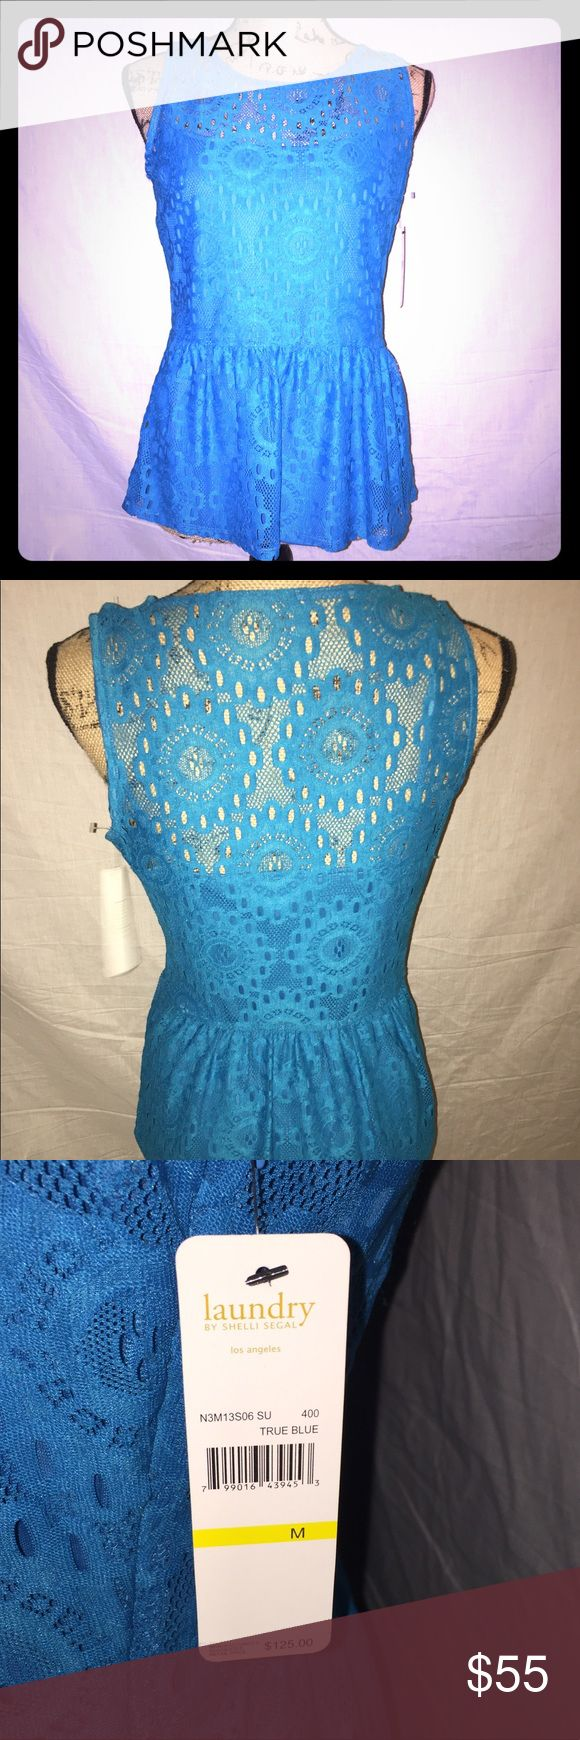 "Laundry by Shelli Segal True Blue Blouse NWT NWT - never worn. Pretty blue Blouse. Shell made of 96% nylon and 4% spandex. Lining 100% polyester. Shoulder 12"" / chest 34"" / length 24"" Laundry by Shelli Segal Tops Blouses"